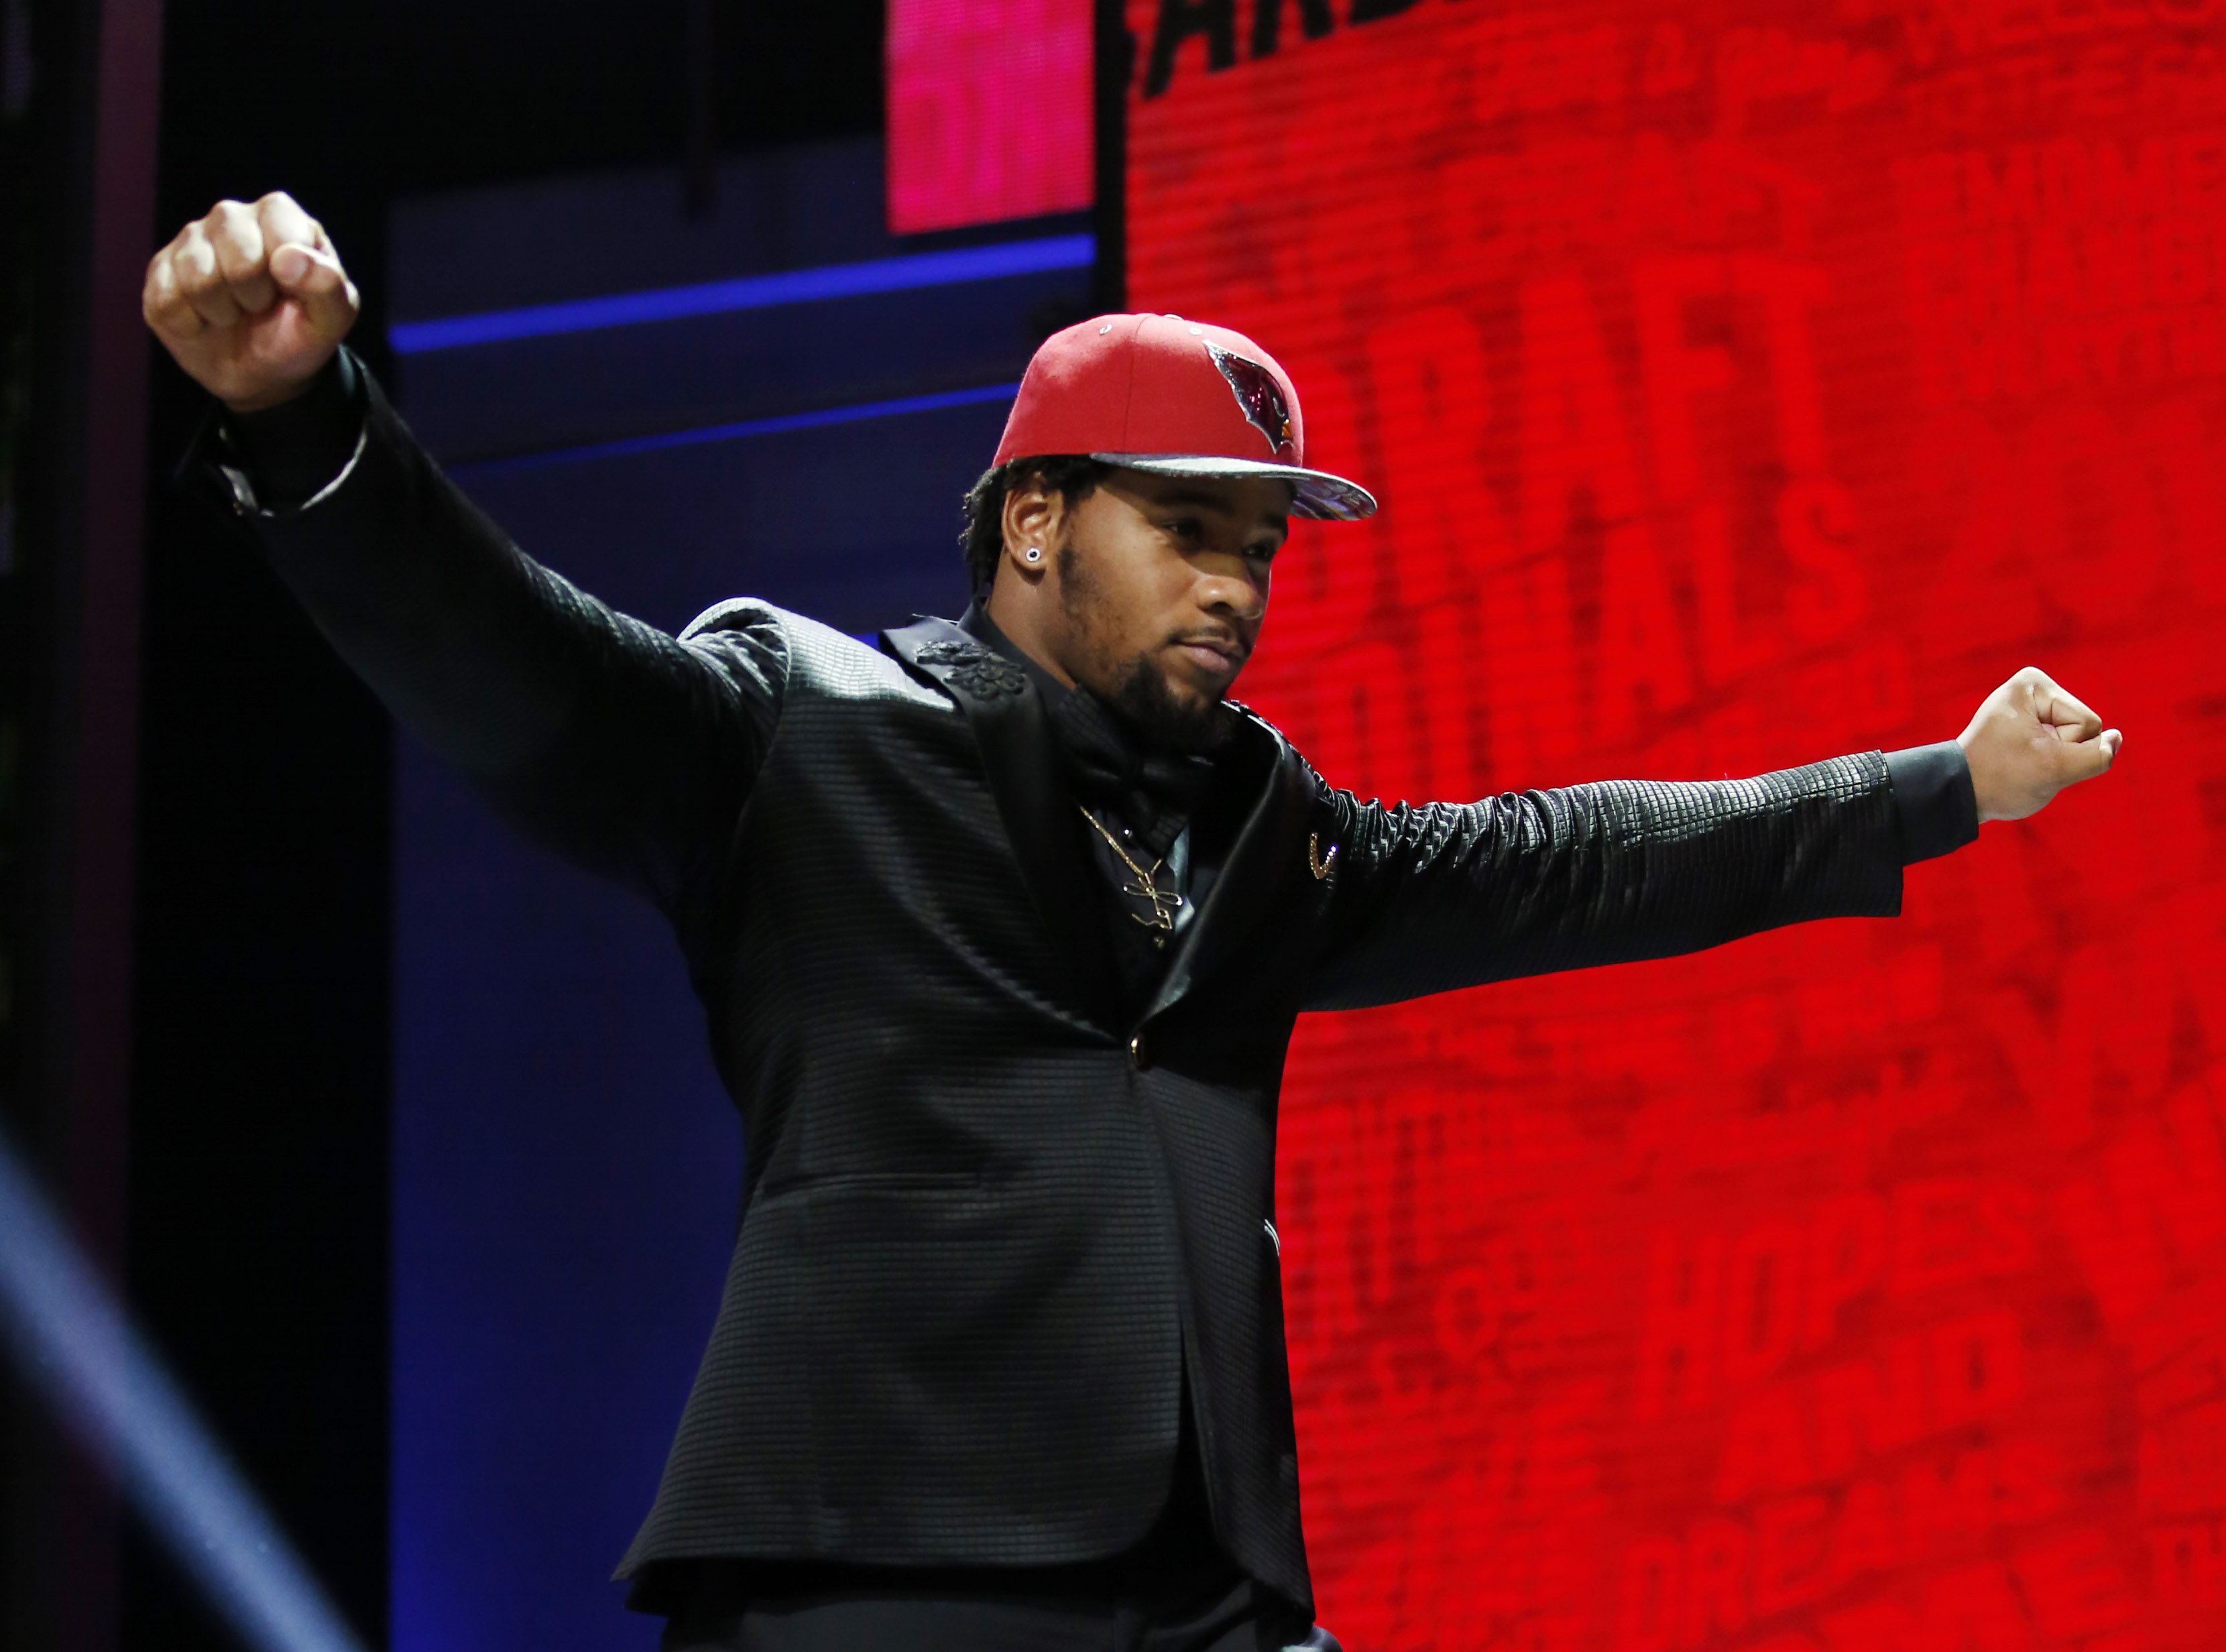 Apr 28, 2016; Chicago, IL, USA; Robert Nkemdiche (Mississippi) after being selected by the Arizona Cardinals as the number twenty-nine overall pick in the first round of the 2016 NFL Draft at Auditorium Theatre. Mandatory Credit: Kamil Krzaczynski-USA TODAY Sports ORG XMIT: USATSI-265038 ORIG FILE ID: 20160428_jel_kb1_155.jpg